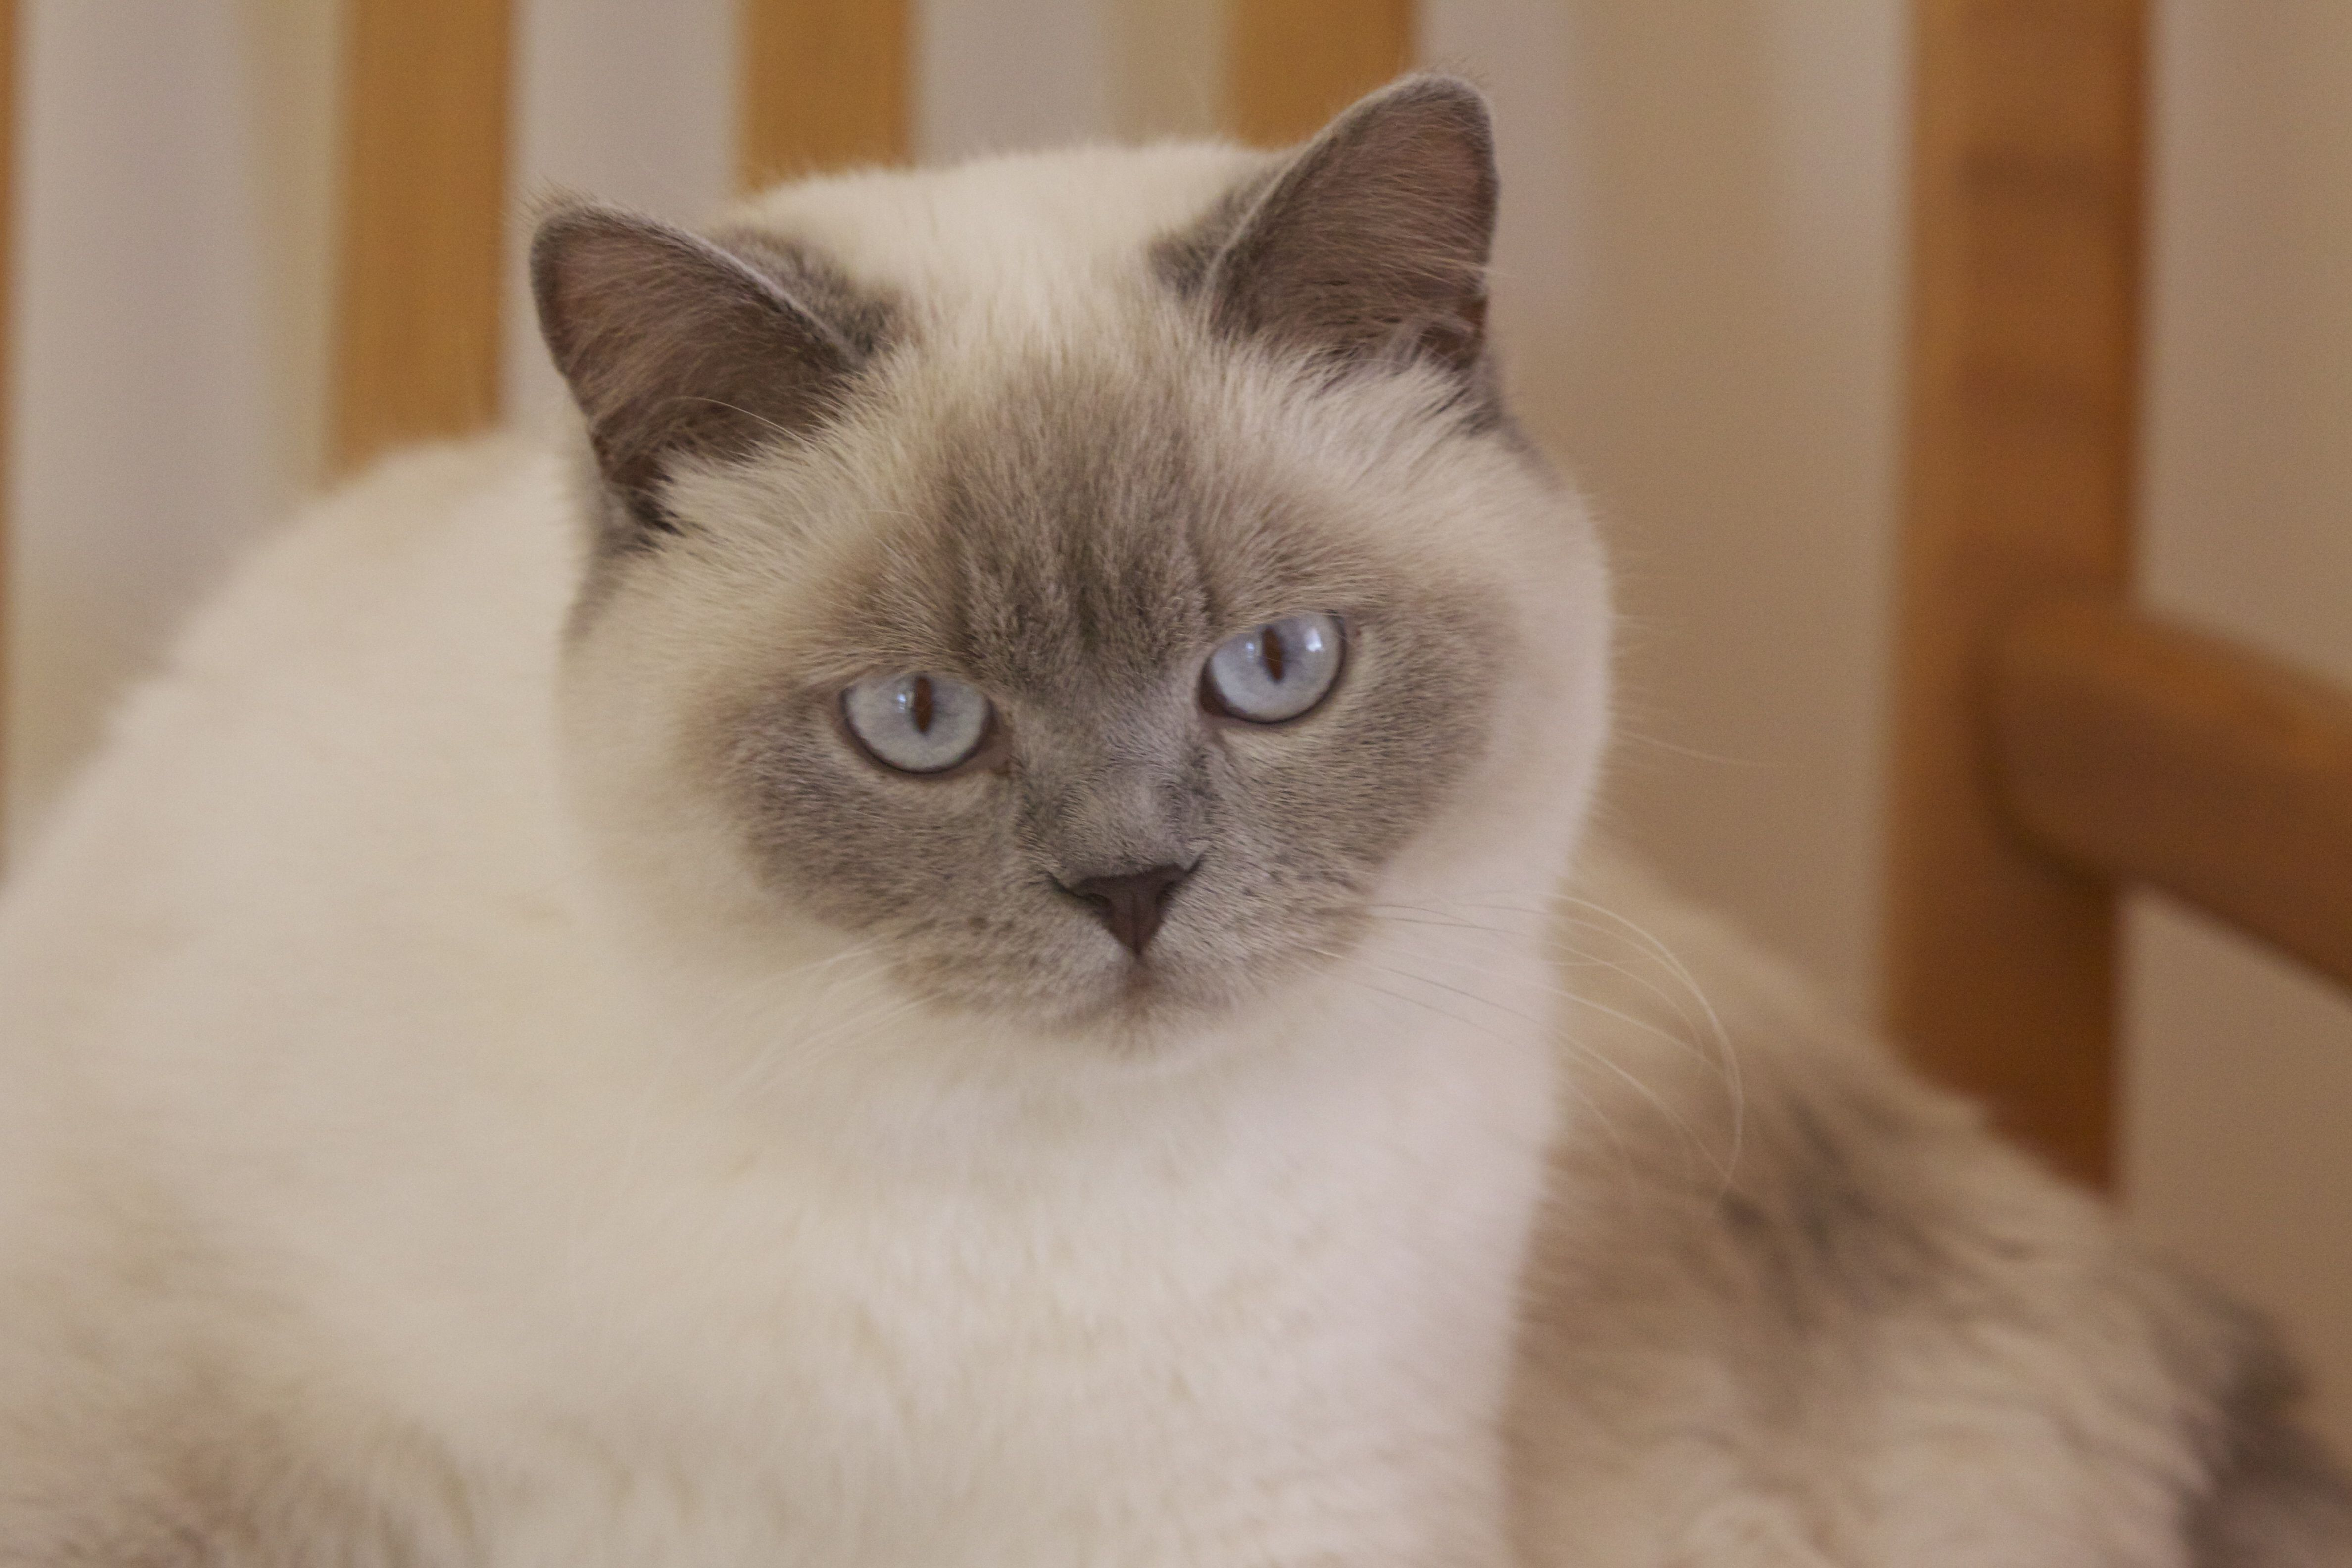 Snowy Colourpoint British Shorthair by Richard Ainsworth